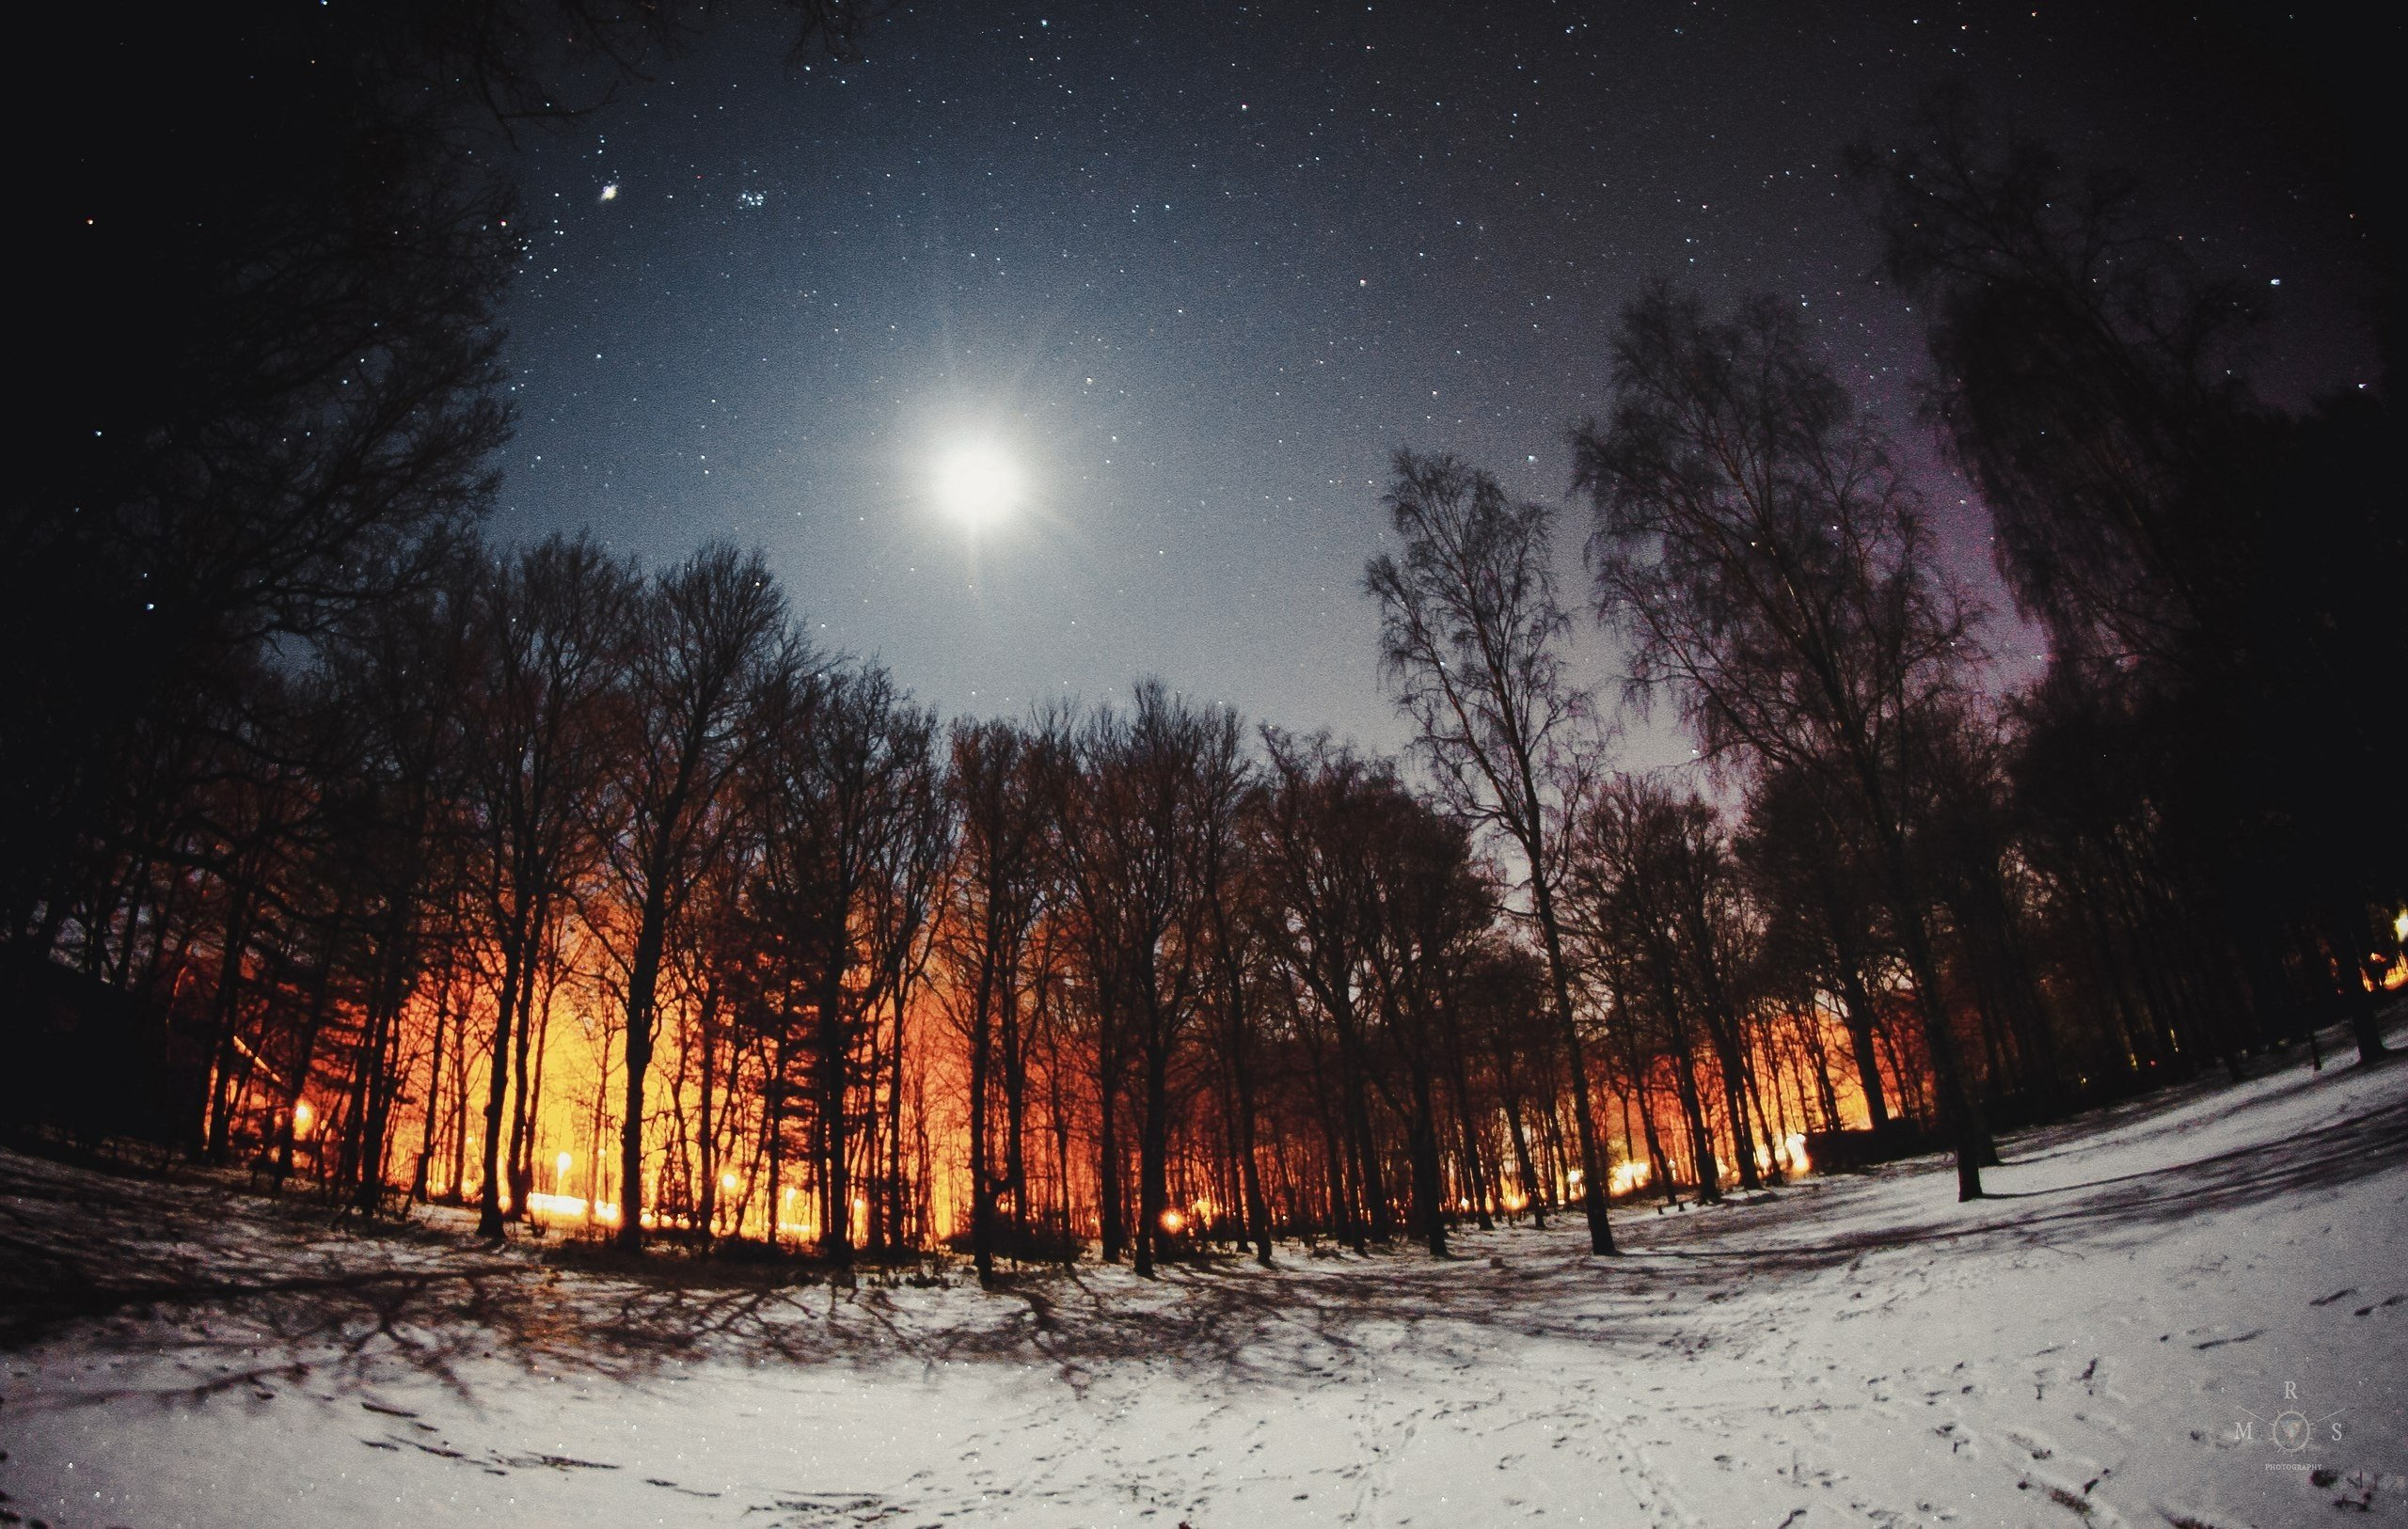 Snowdrops Snow Forest Lights Moon Hd Wallpapers